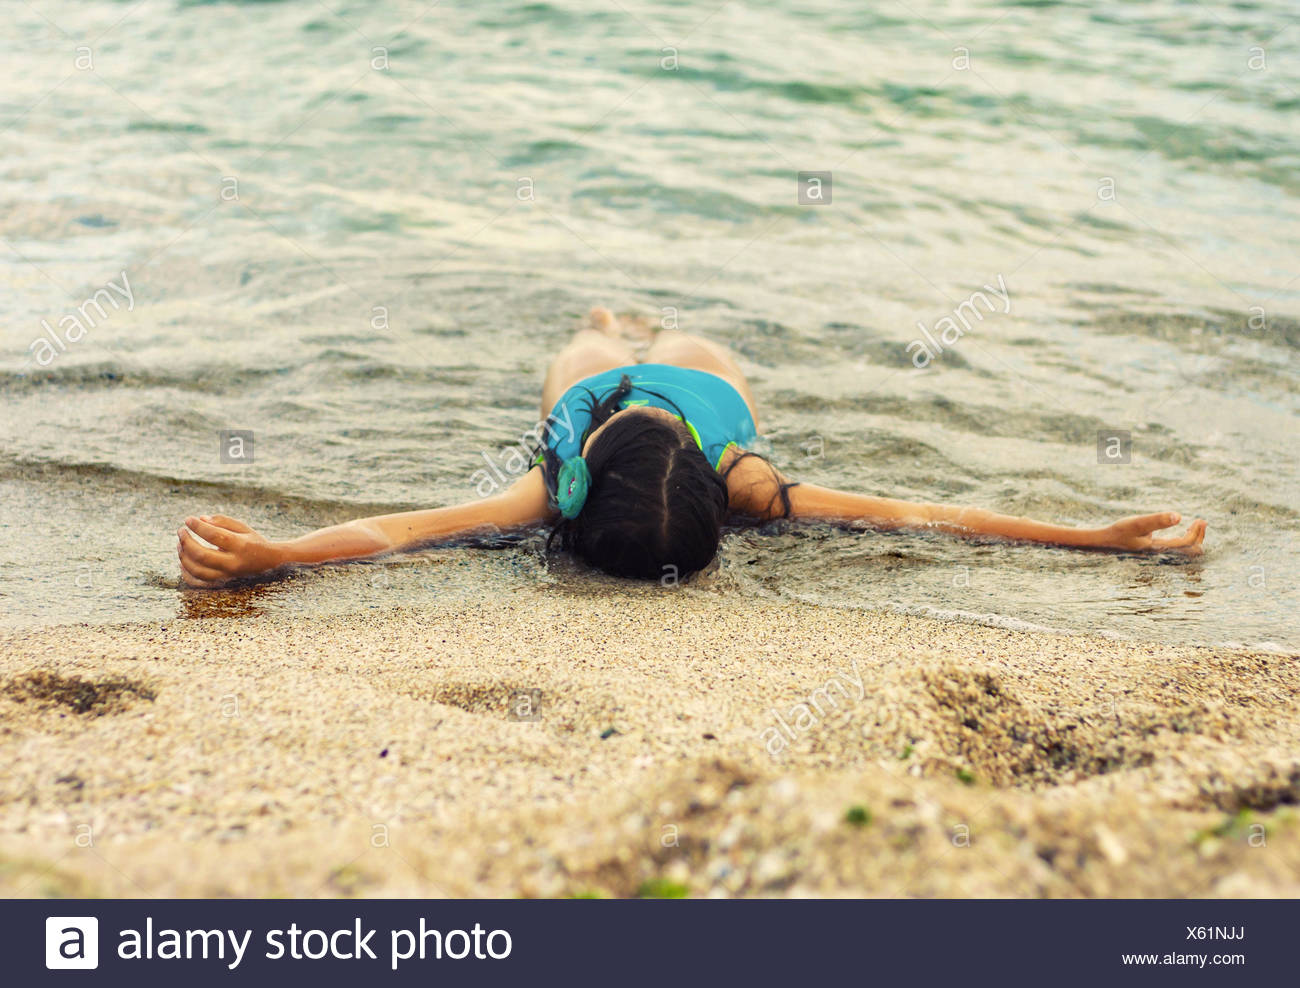 Little girl (6-7) lying on beach in waves - Stock Image